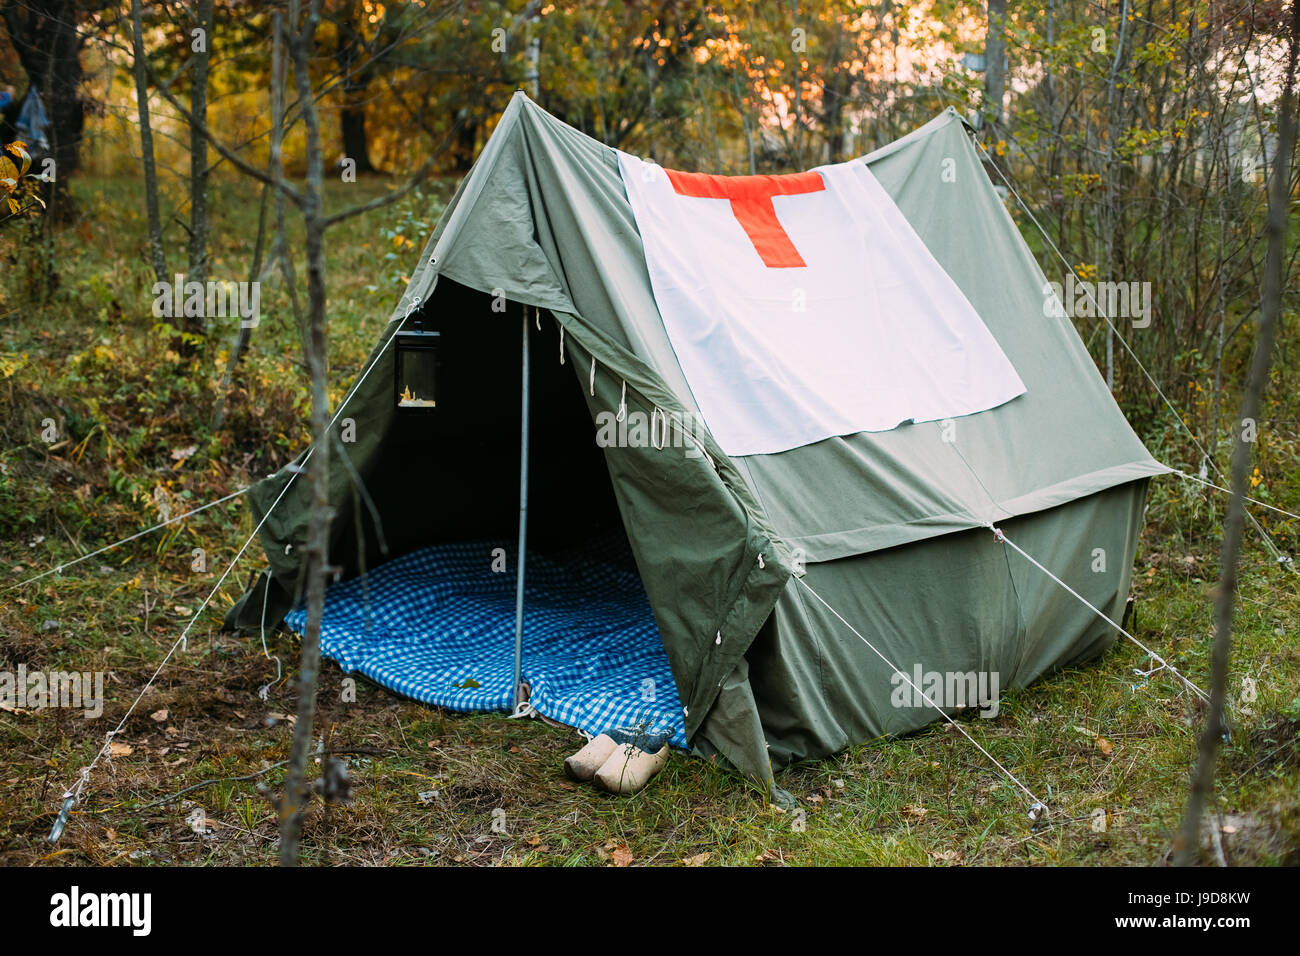 C& Tent Of Military Medical Orderlies Of Infantry German Wehrmacht Infantry Soldiers During World War II & Red Cross Medical Tent Stock Photos u0026 Red Cross Medical Tent Stock ...